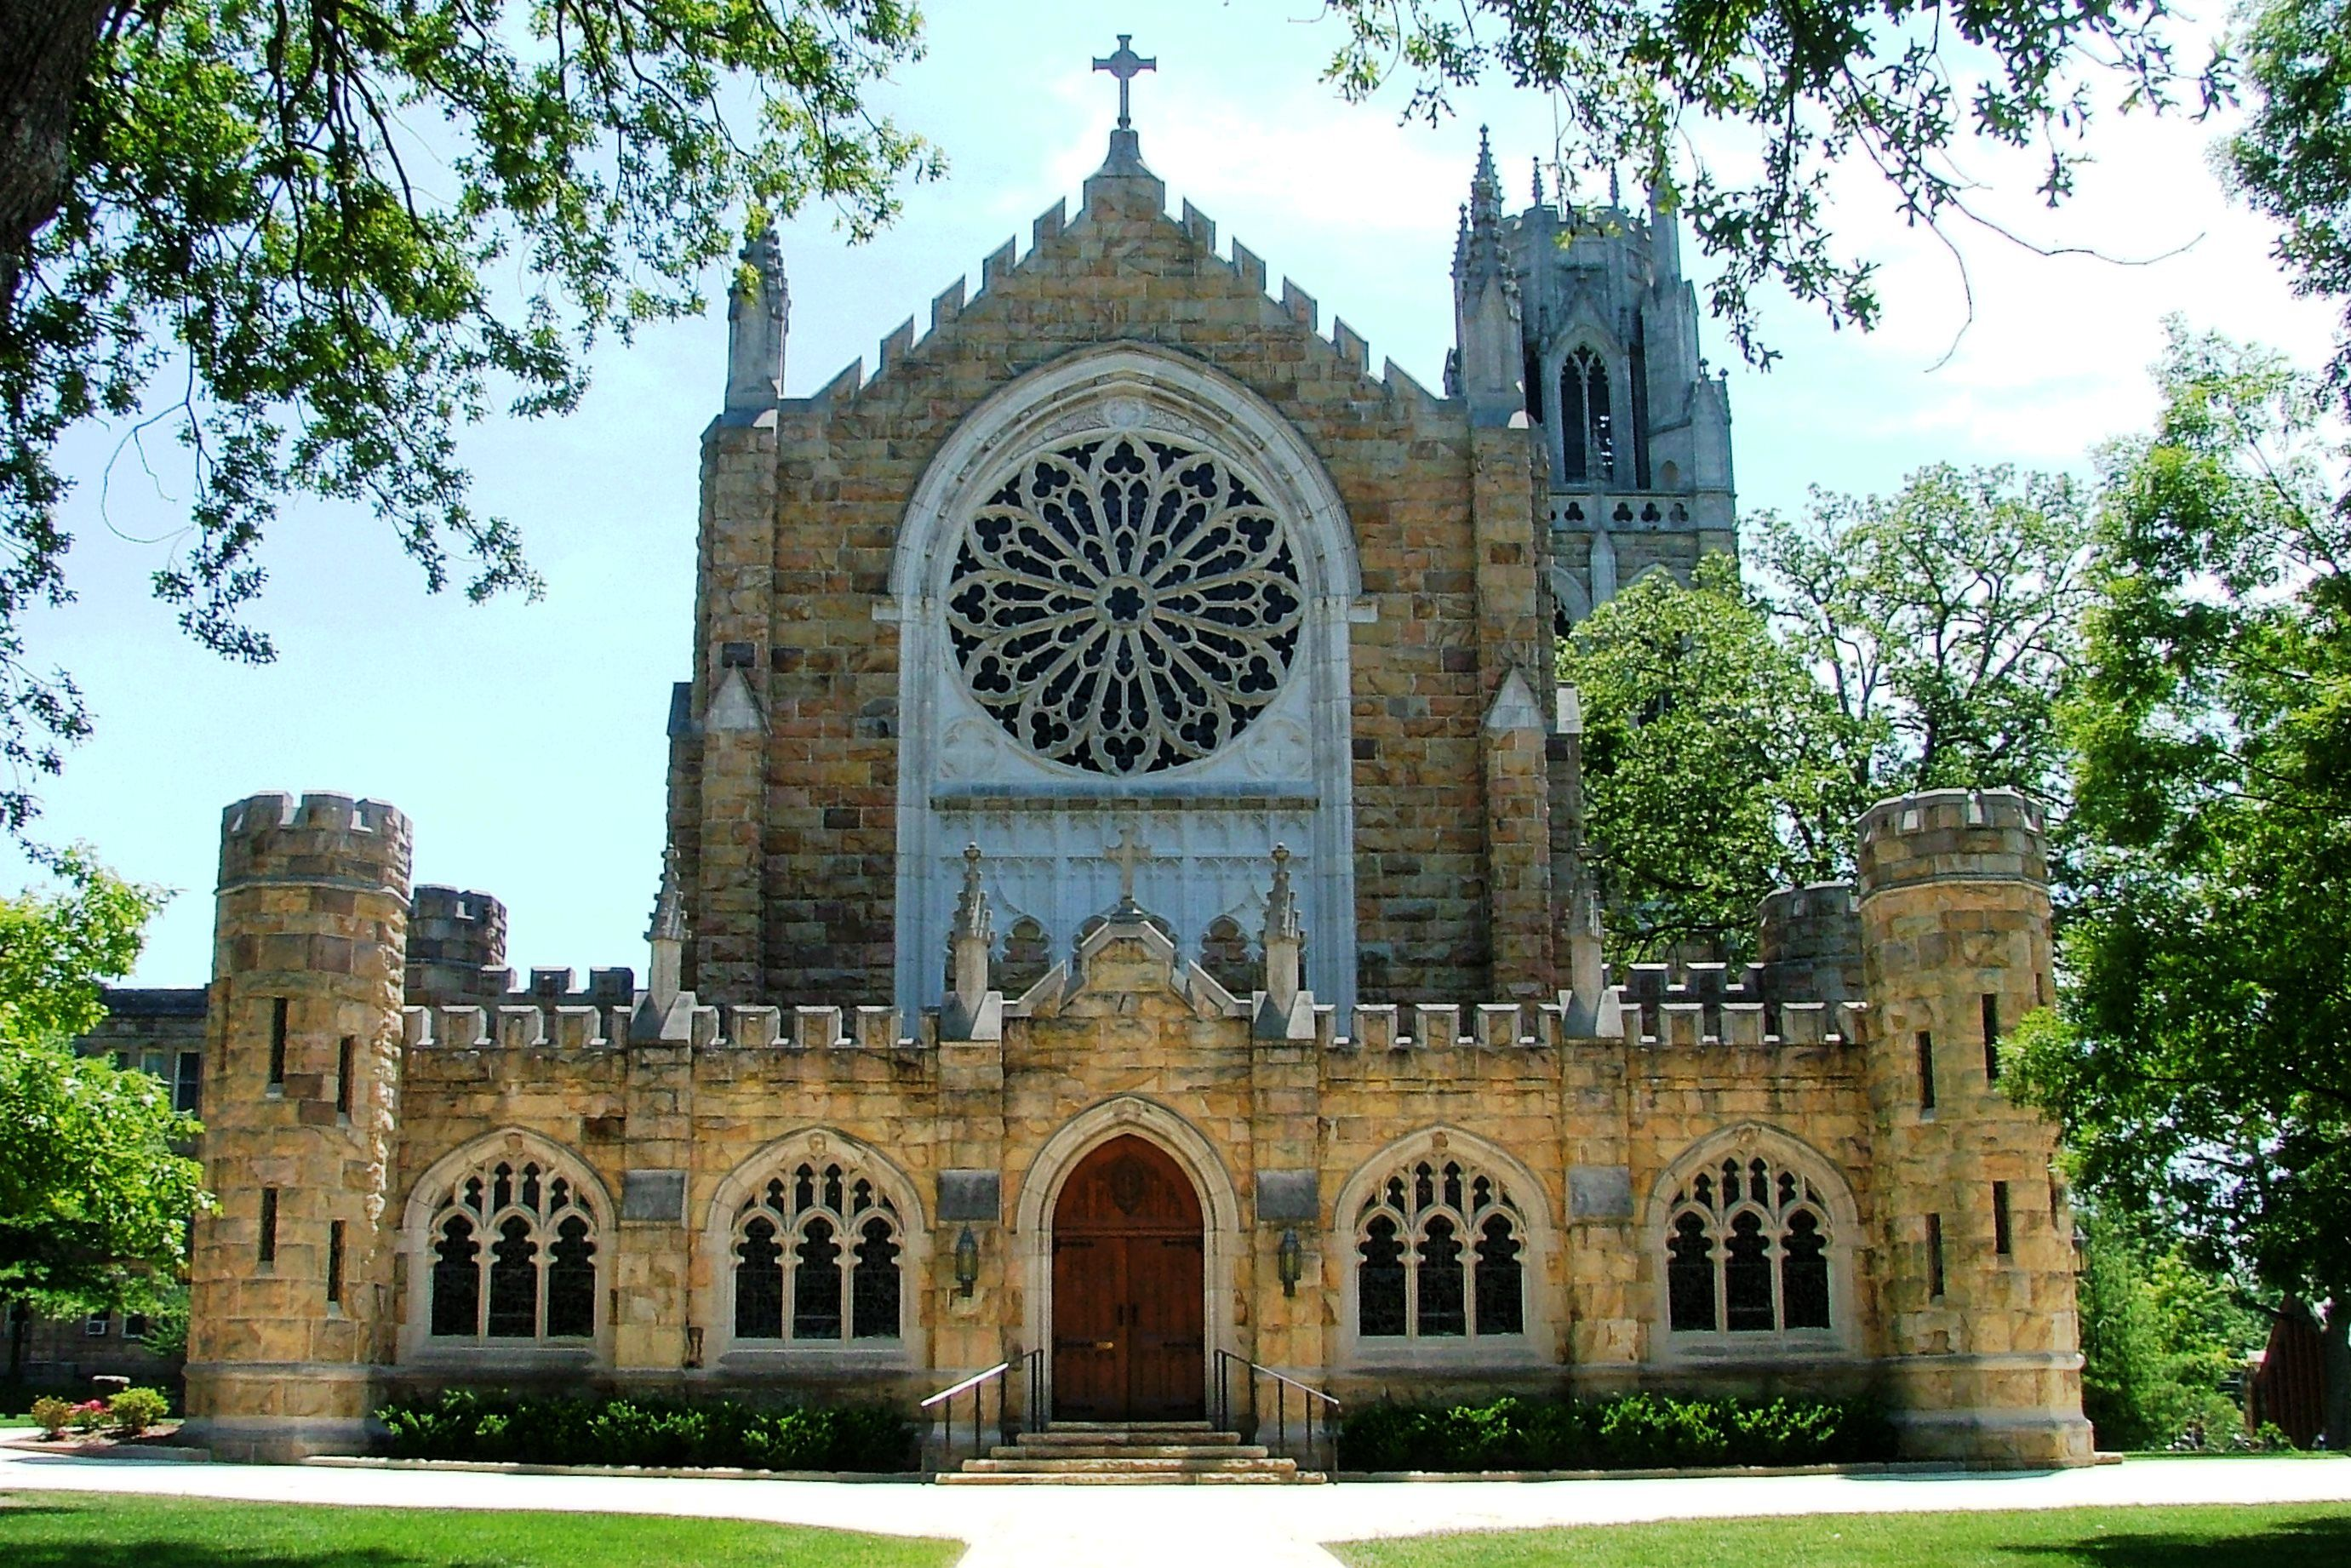 All Saints' Chapel at Sewanee, The University of the South